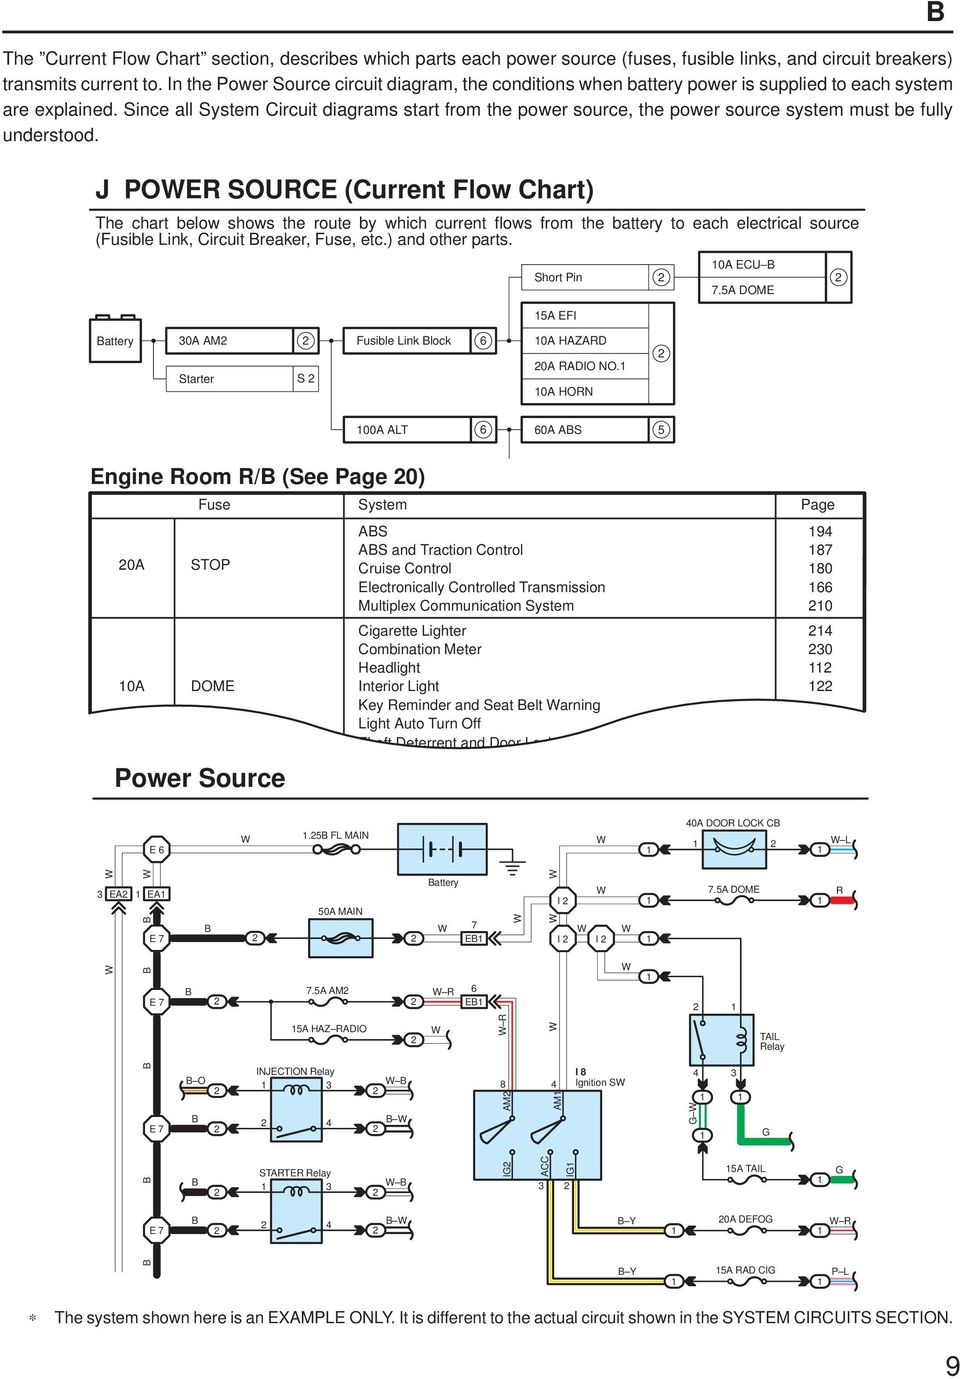 Hilux Electrical Wiring Diagram Pub No Dr114w Pdf Power Window Vt Since All System Circuit Diagrams Start From The Source Must